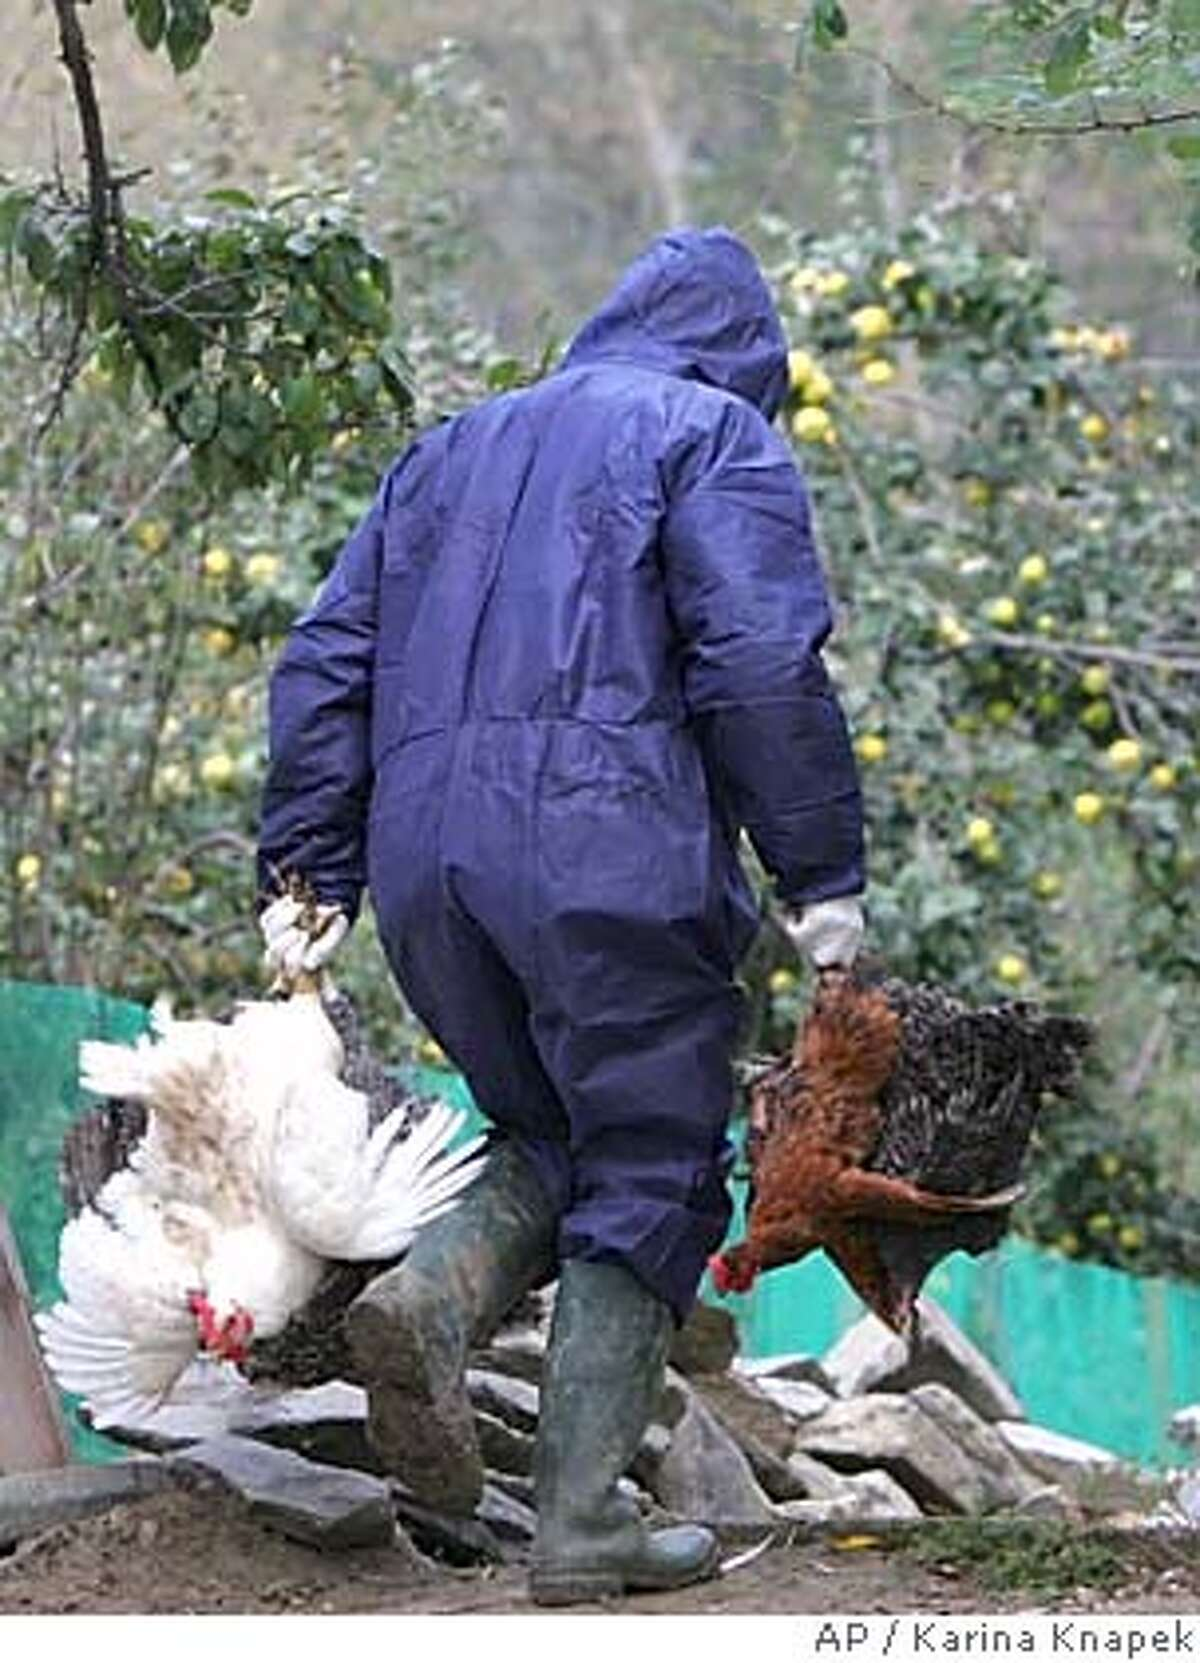 A Romanian health worker carries domestic birds before gassing them in the village of Vulturul, 300km (186 miles) east of Bucharest, Romania Saturday Oct. 15 2005. Romanian authorities called for calm and placed an eastern region under quarantine Saturday as tests confirmed the deadly strain of a bird flu virus that has devastated flocks and killed dozens of people in Asia has moved into eastern Europe.(AP Photo/Karina Knapek)